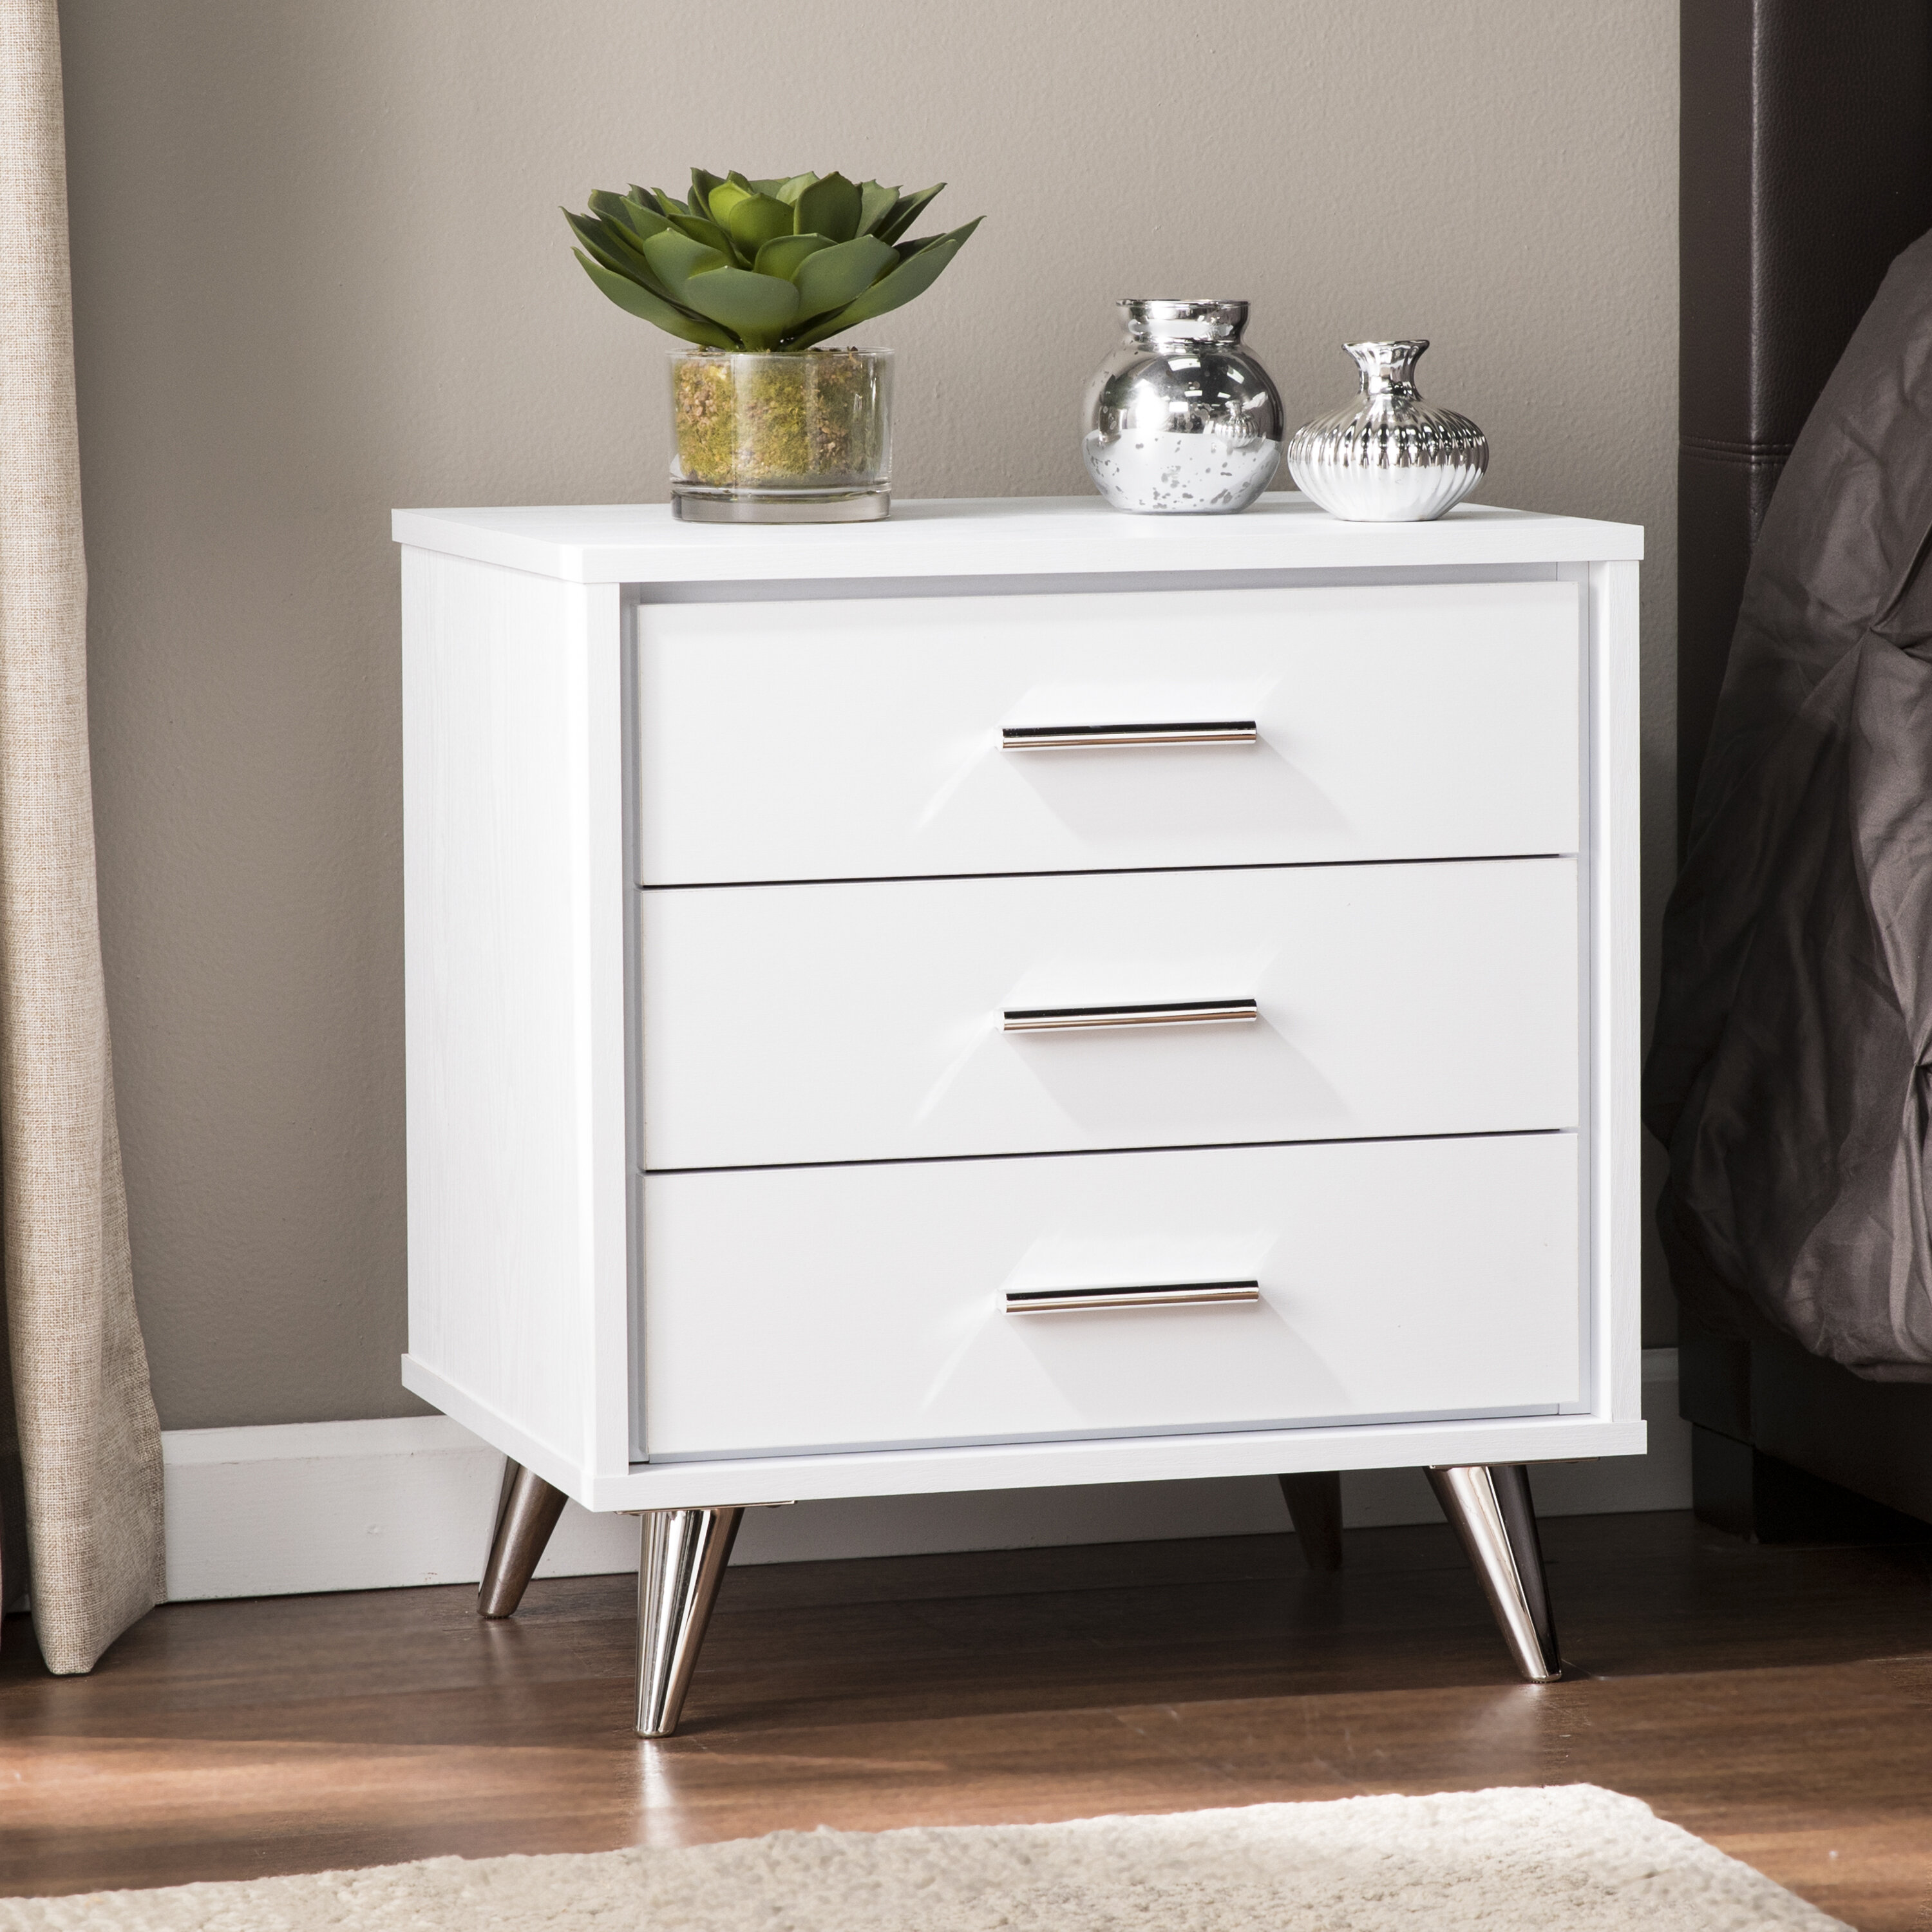 Furniture Brooklyn White Bedside Table Solid Fully Assembled Bedside Cabinet Metal Runners Home Furniture Diy Lugecook Com Br